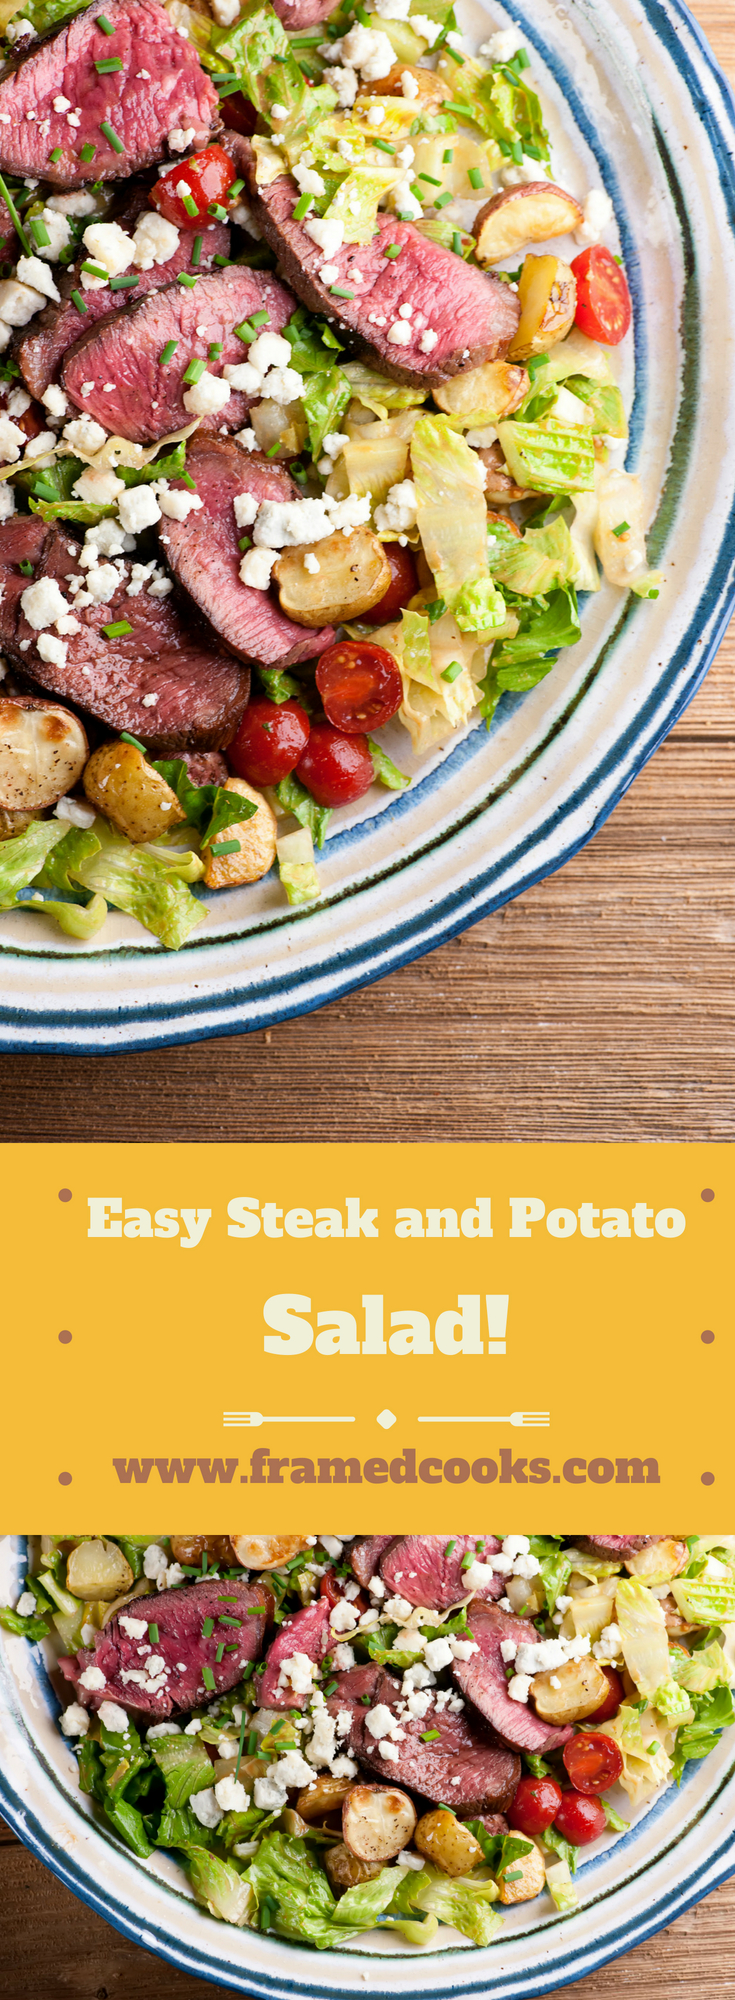 This recipe for easy steak and potato salad takes meat and potatoes into a lighter, delicious salad form!  A sprinkle of blue cheese and some cherry tomatoes round out this satisfying supper.